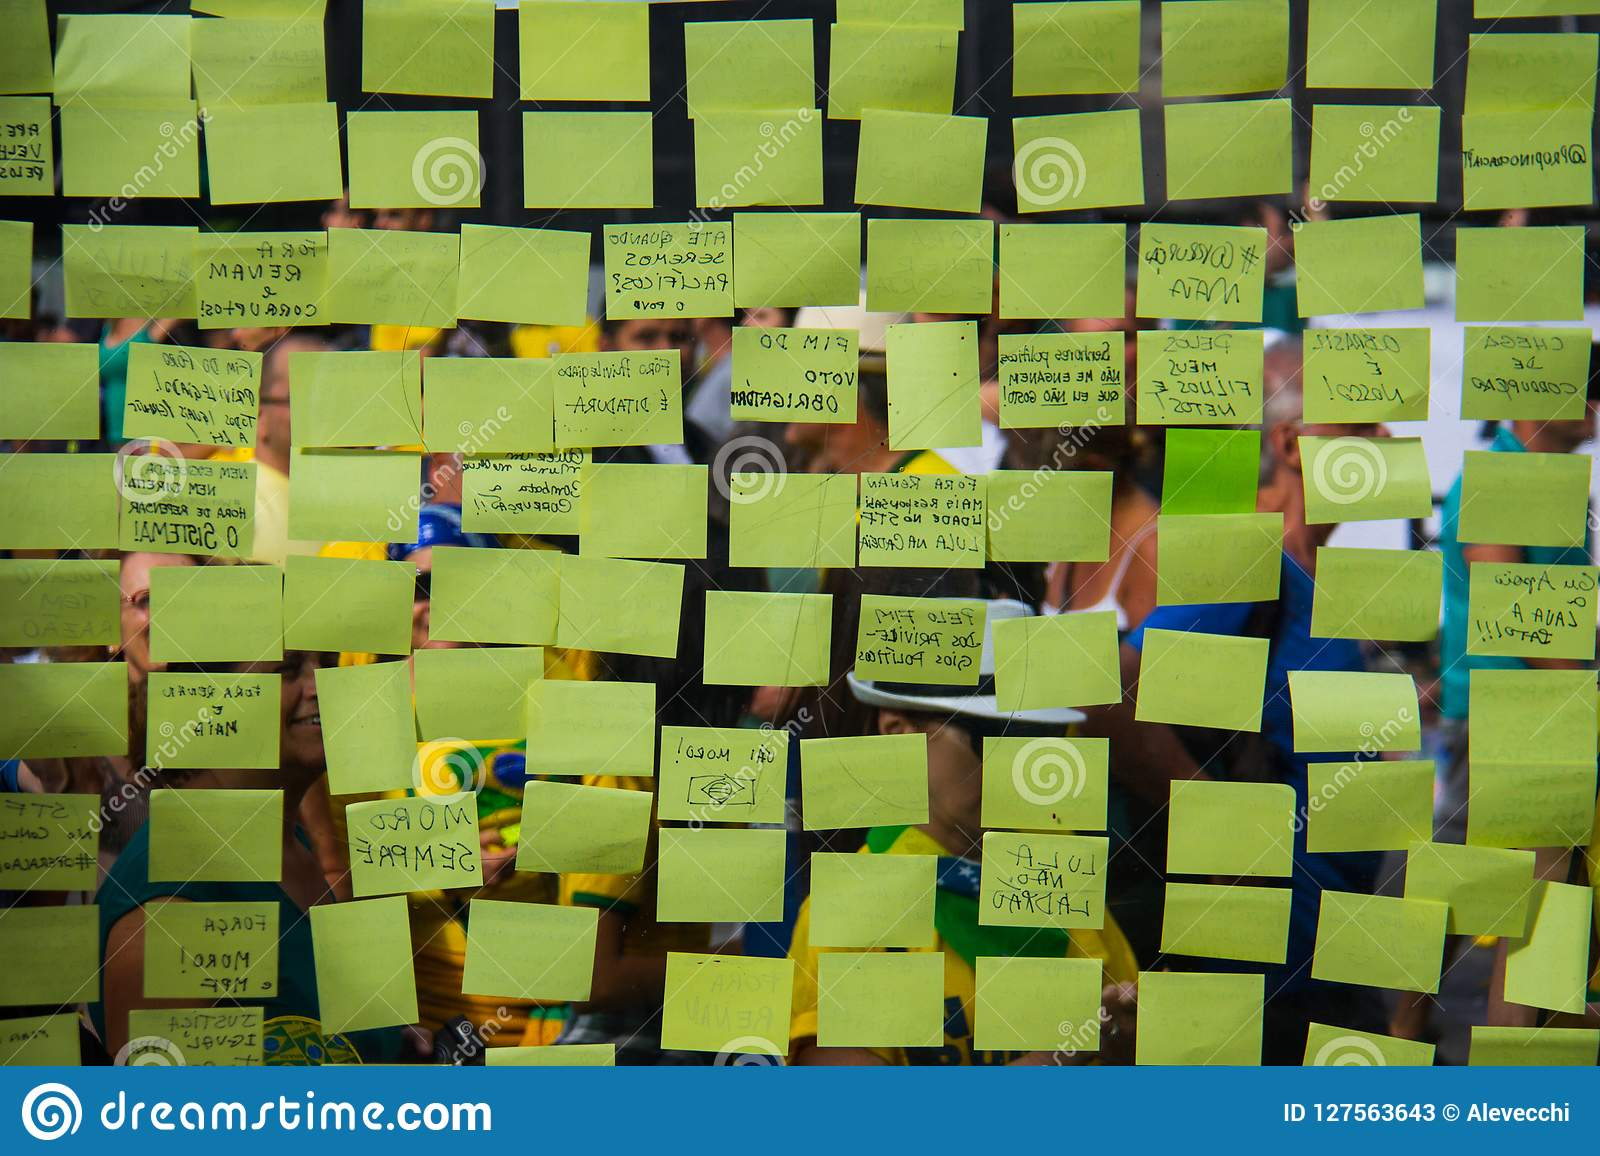 Yellow post-it sticky notes on a glass wall.